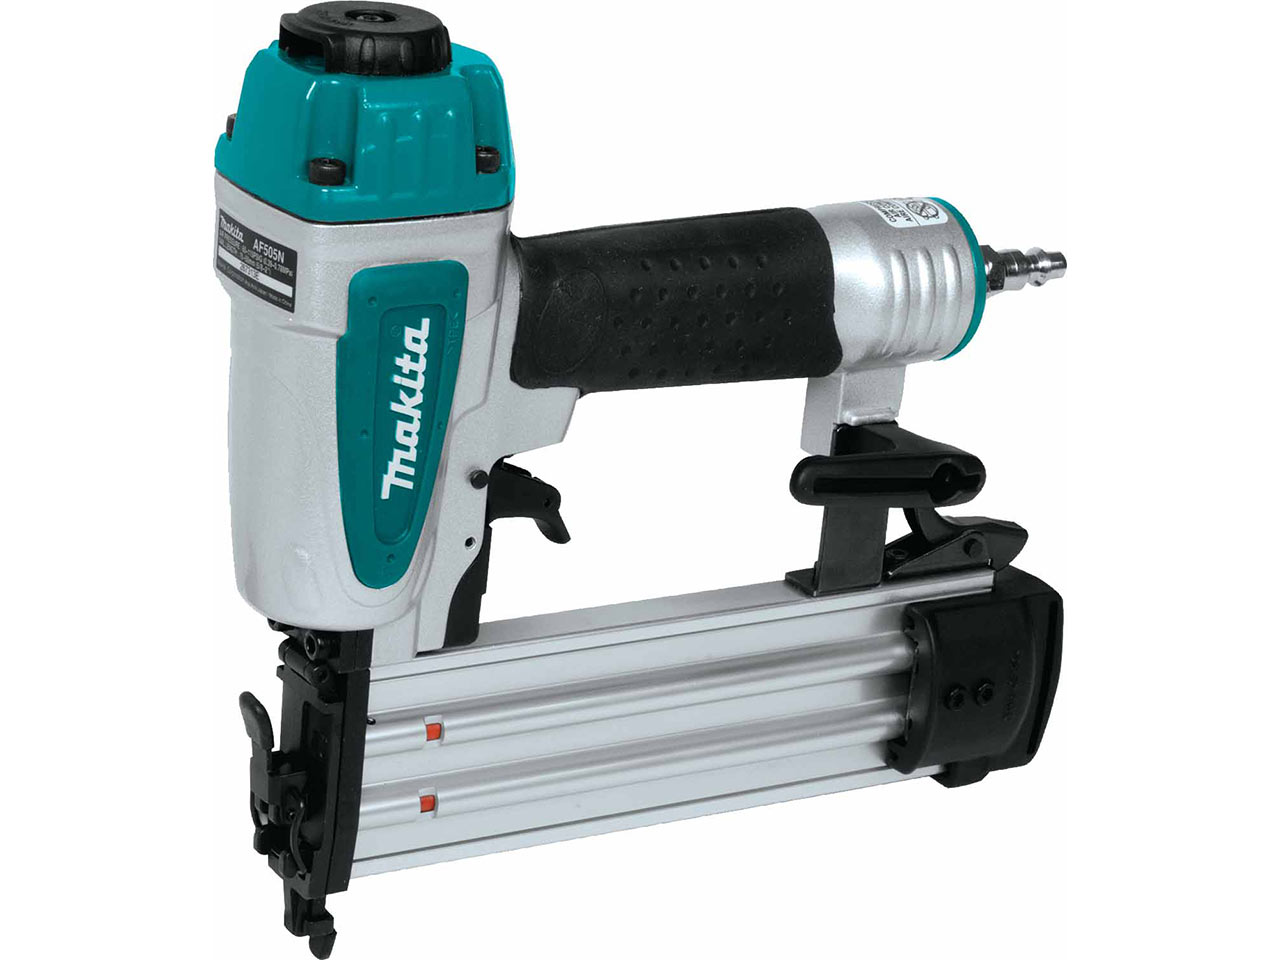 Hitachi Nr90gc2 First Fix Gas Framing Nailer Nail Gun